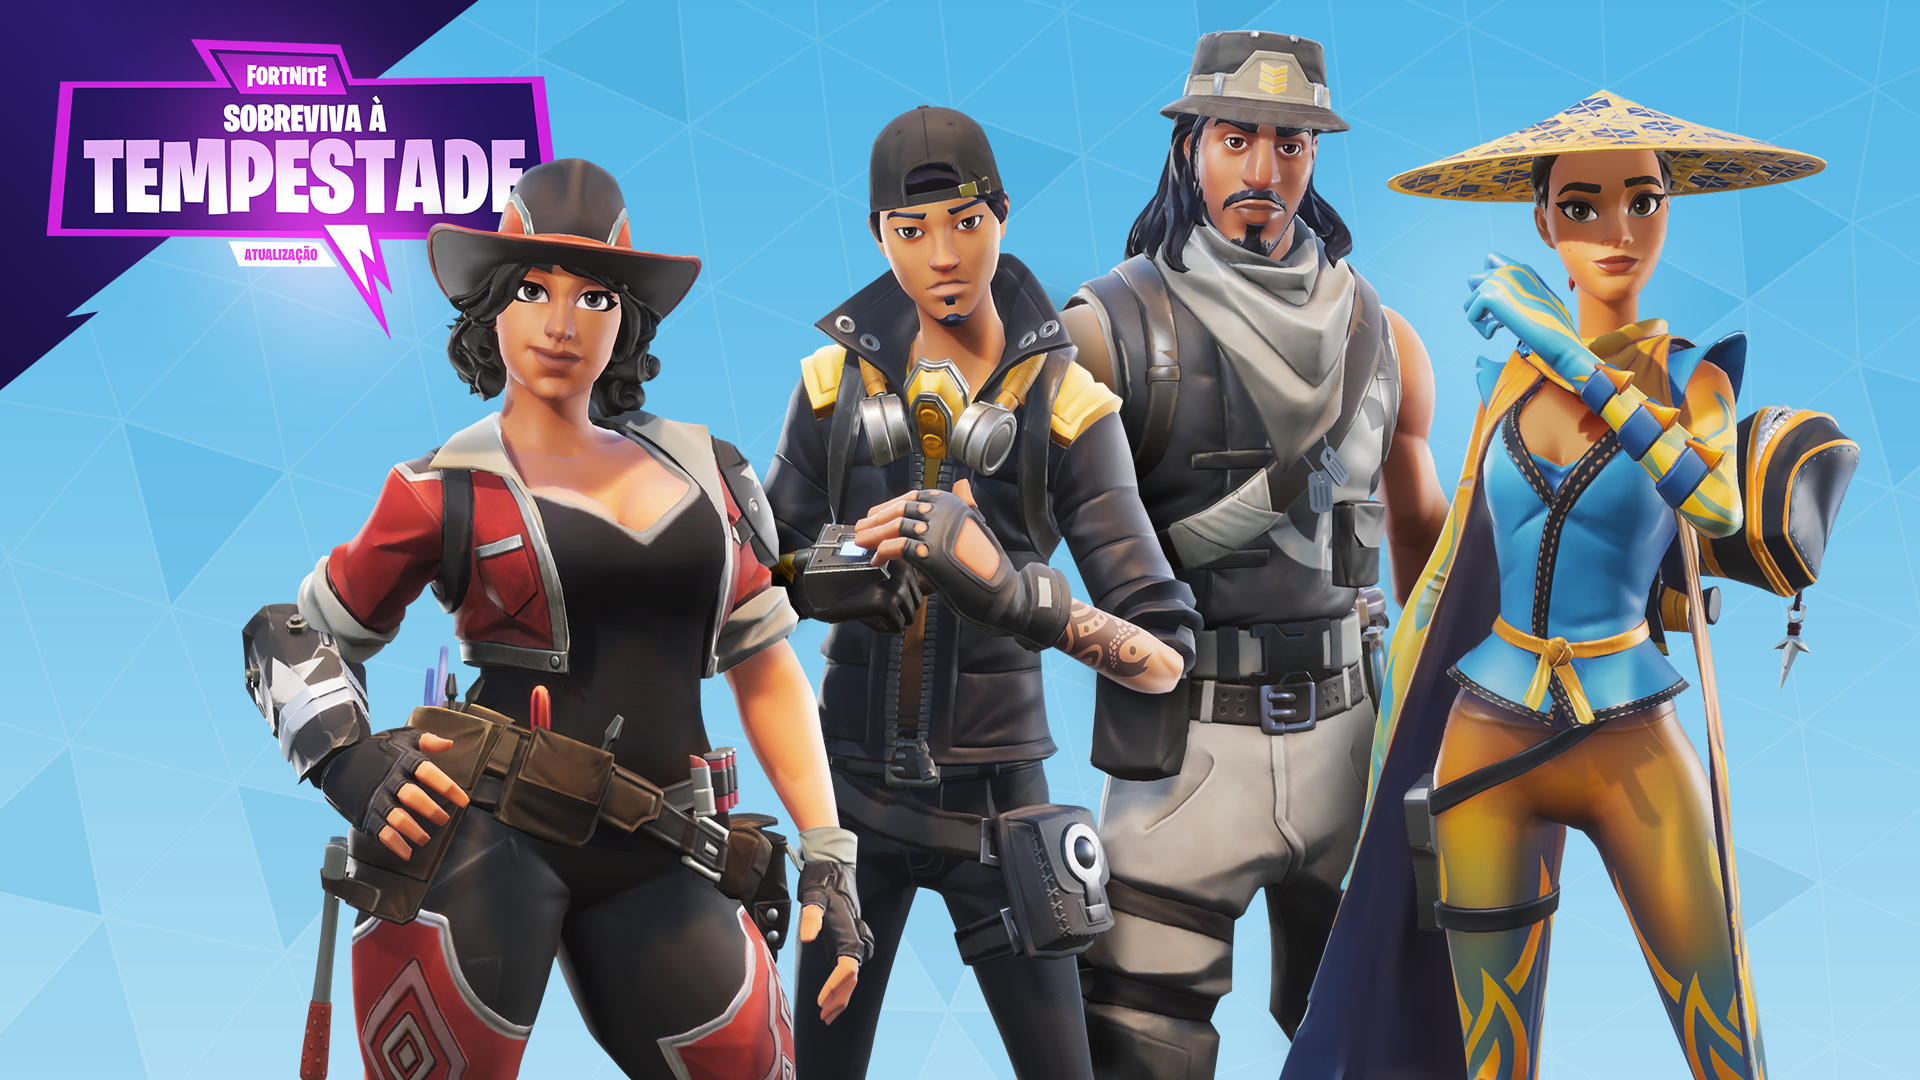 Fortnite%2Fblog%2Fsurvive-the-storm---release-notes%2FPT_New-Hereos-1920x1080-45d07ce91af82ff9afbbf108f14d5847e732fb1b